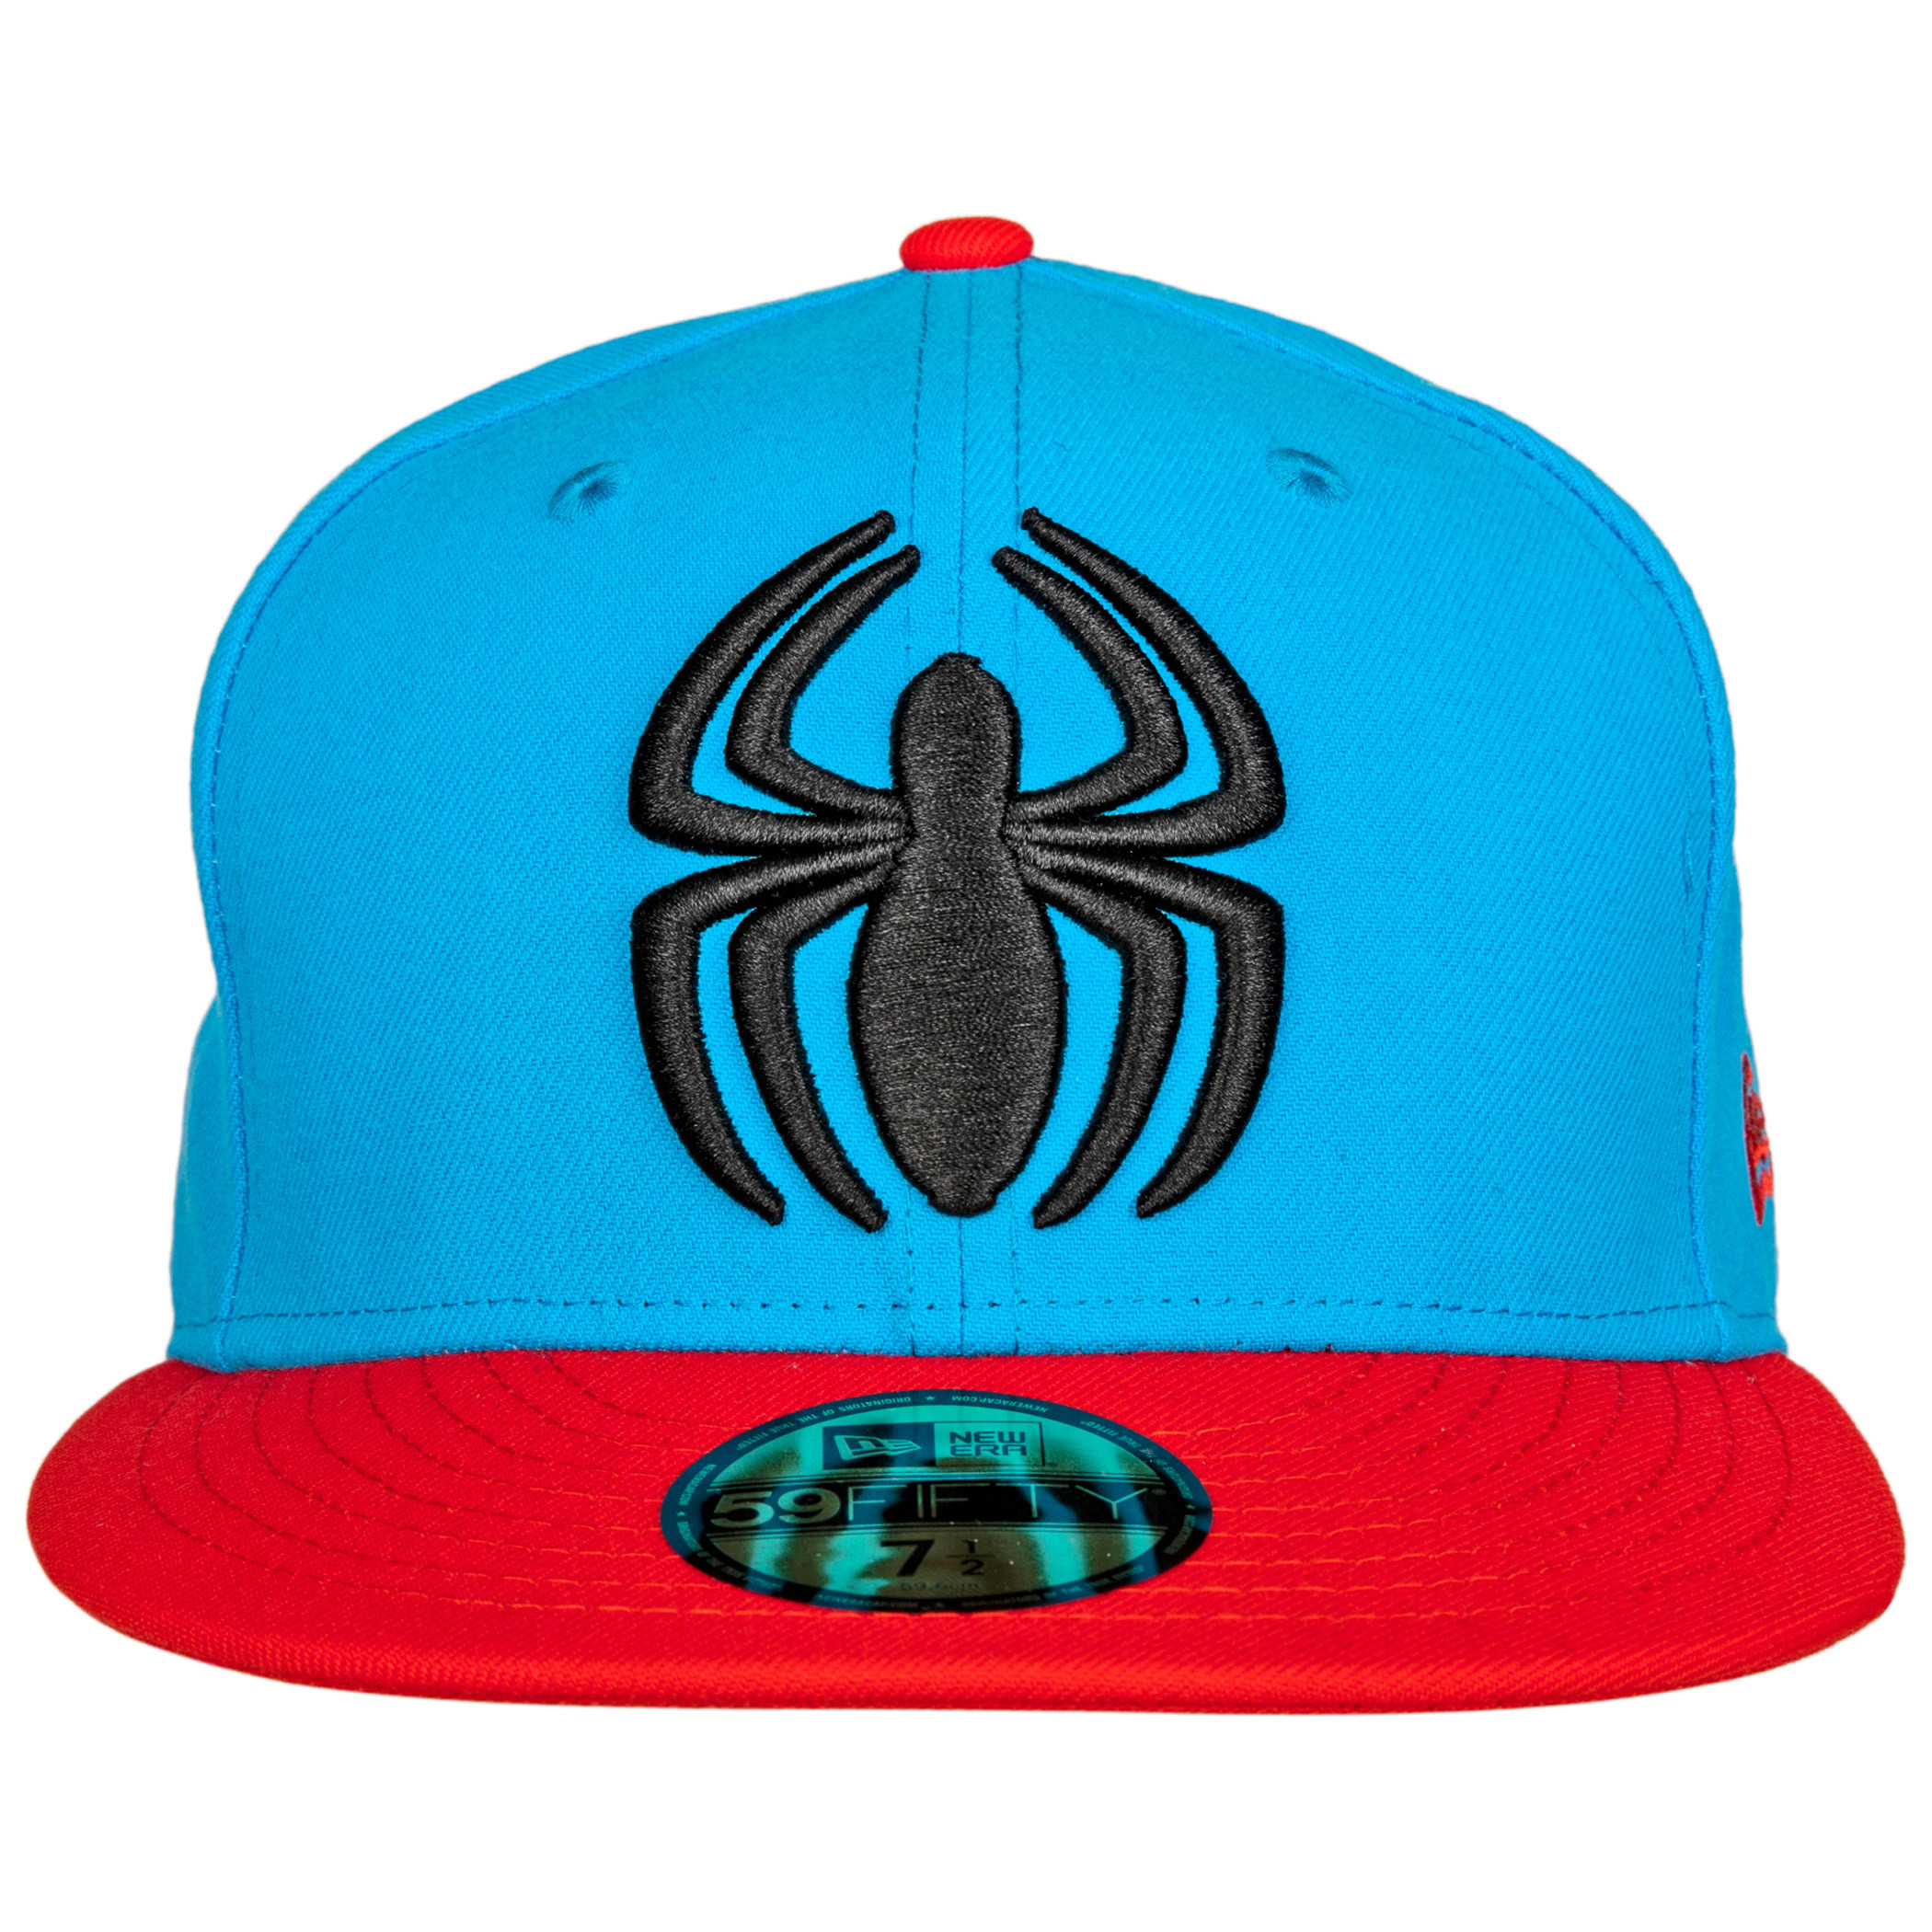 Spider-Man Scarlet Spider New Era 59Fifty Fitted Hat